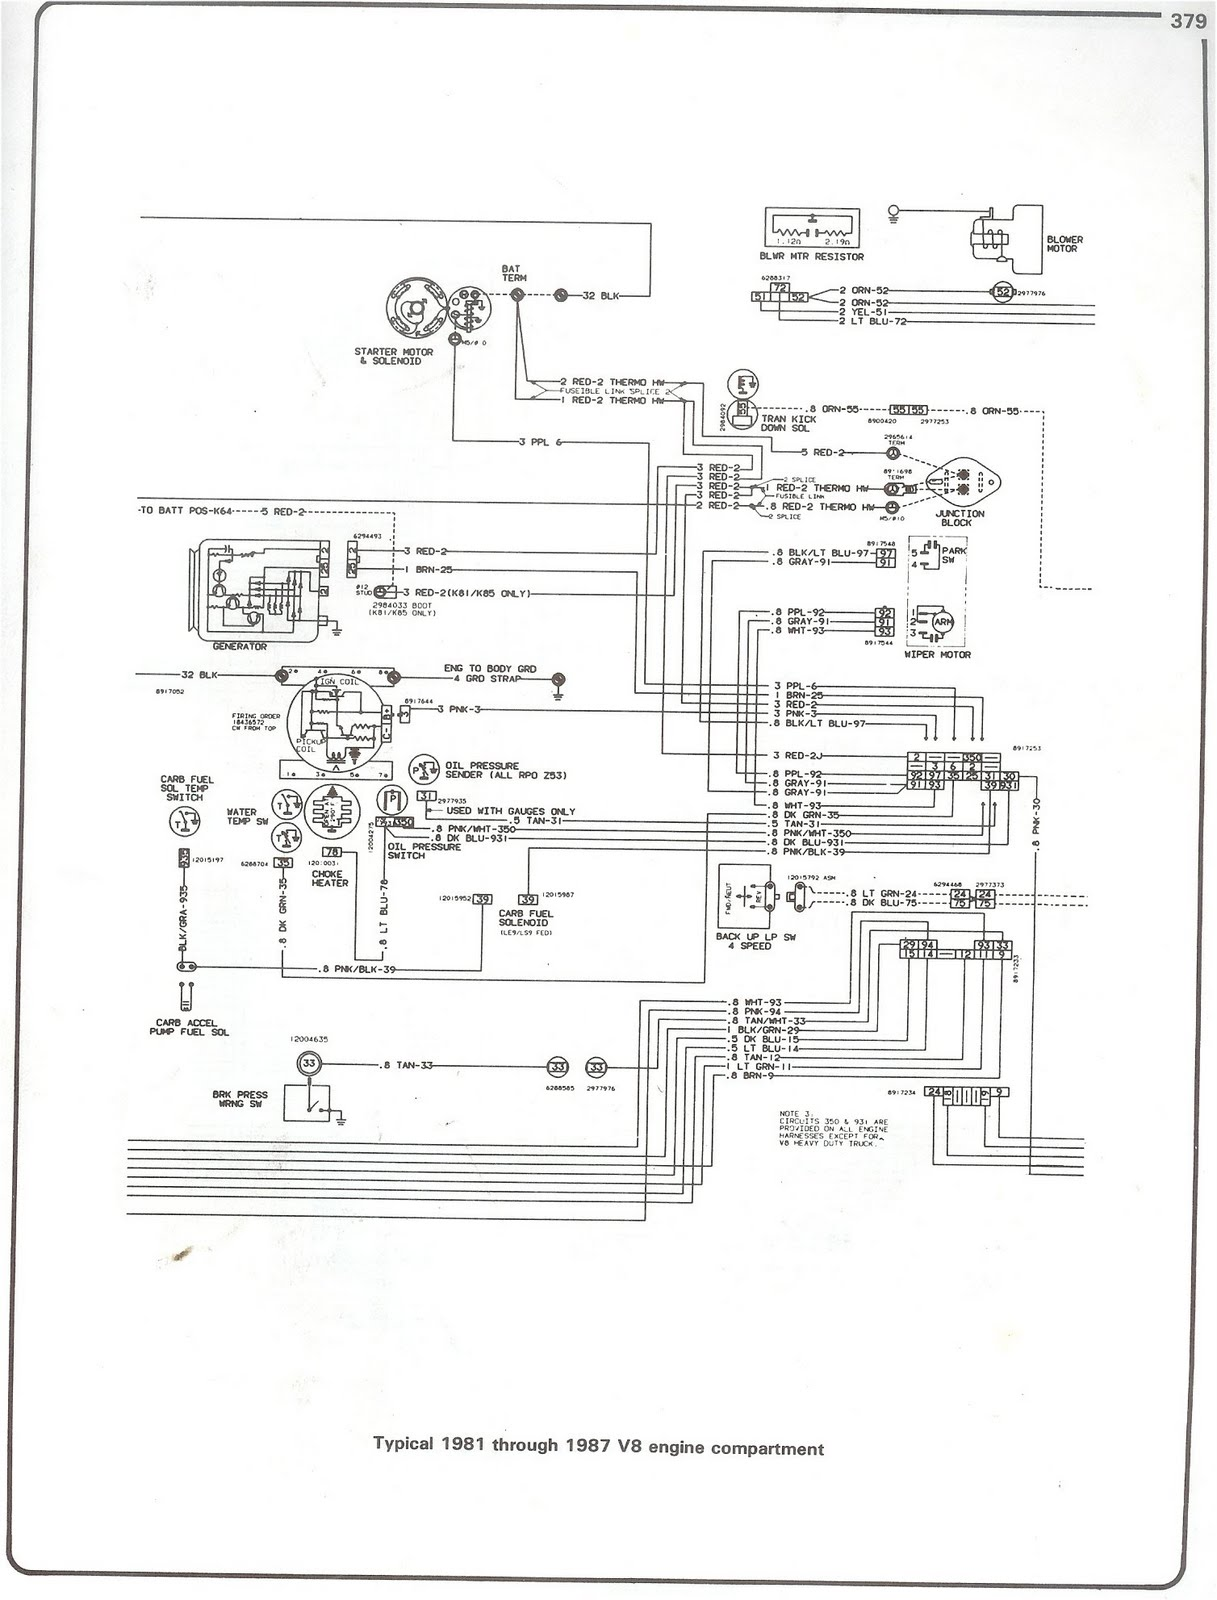 1981 toyota pickup tail light wiring diagram trusted wiring diagram 1979 toyota pickup wiring diagram 1991 [ 1217 x 1600 Pixel ]